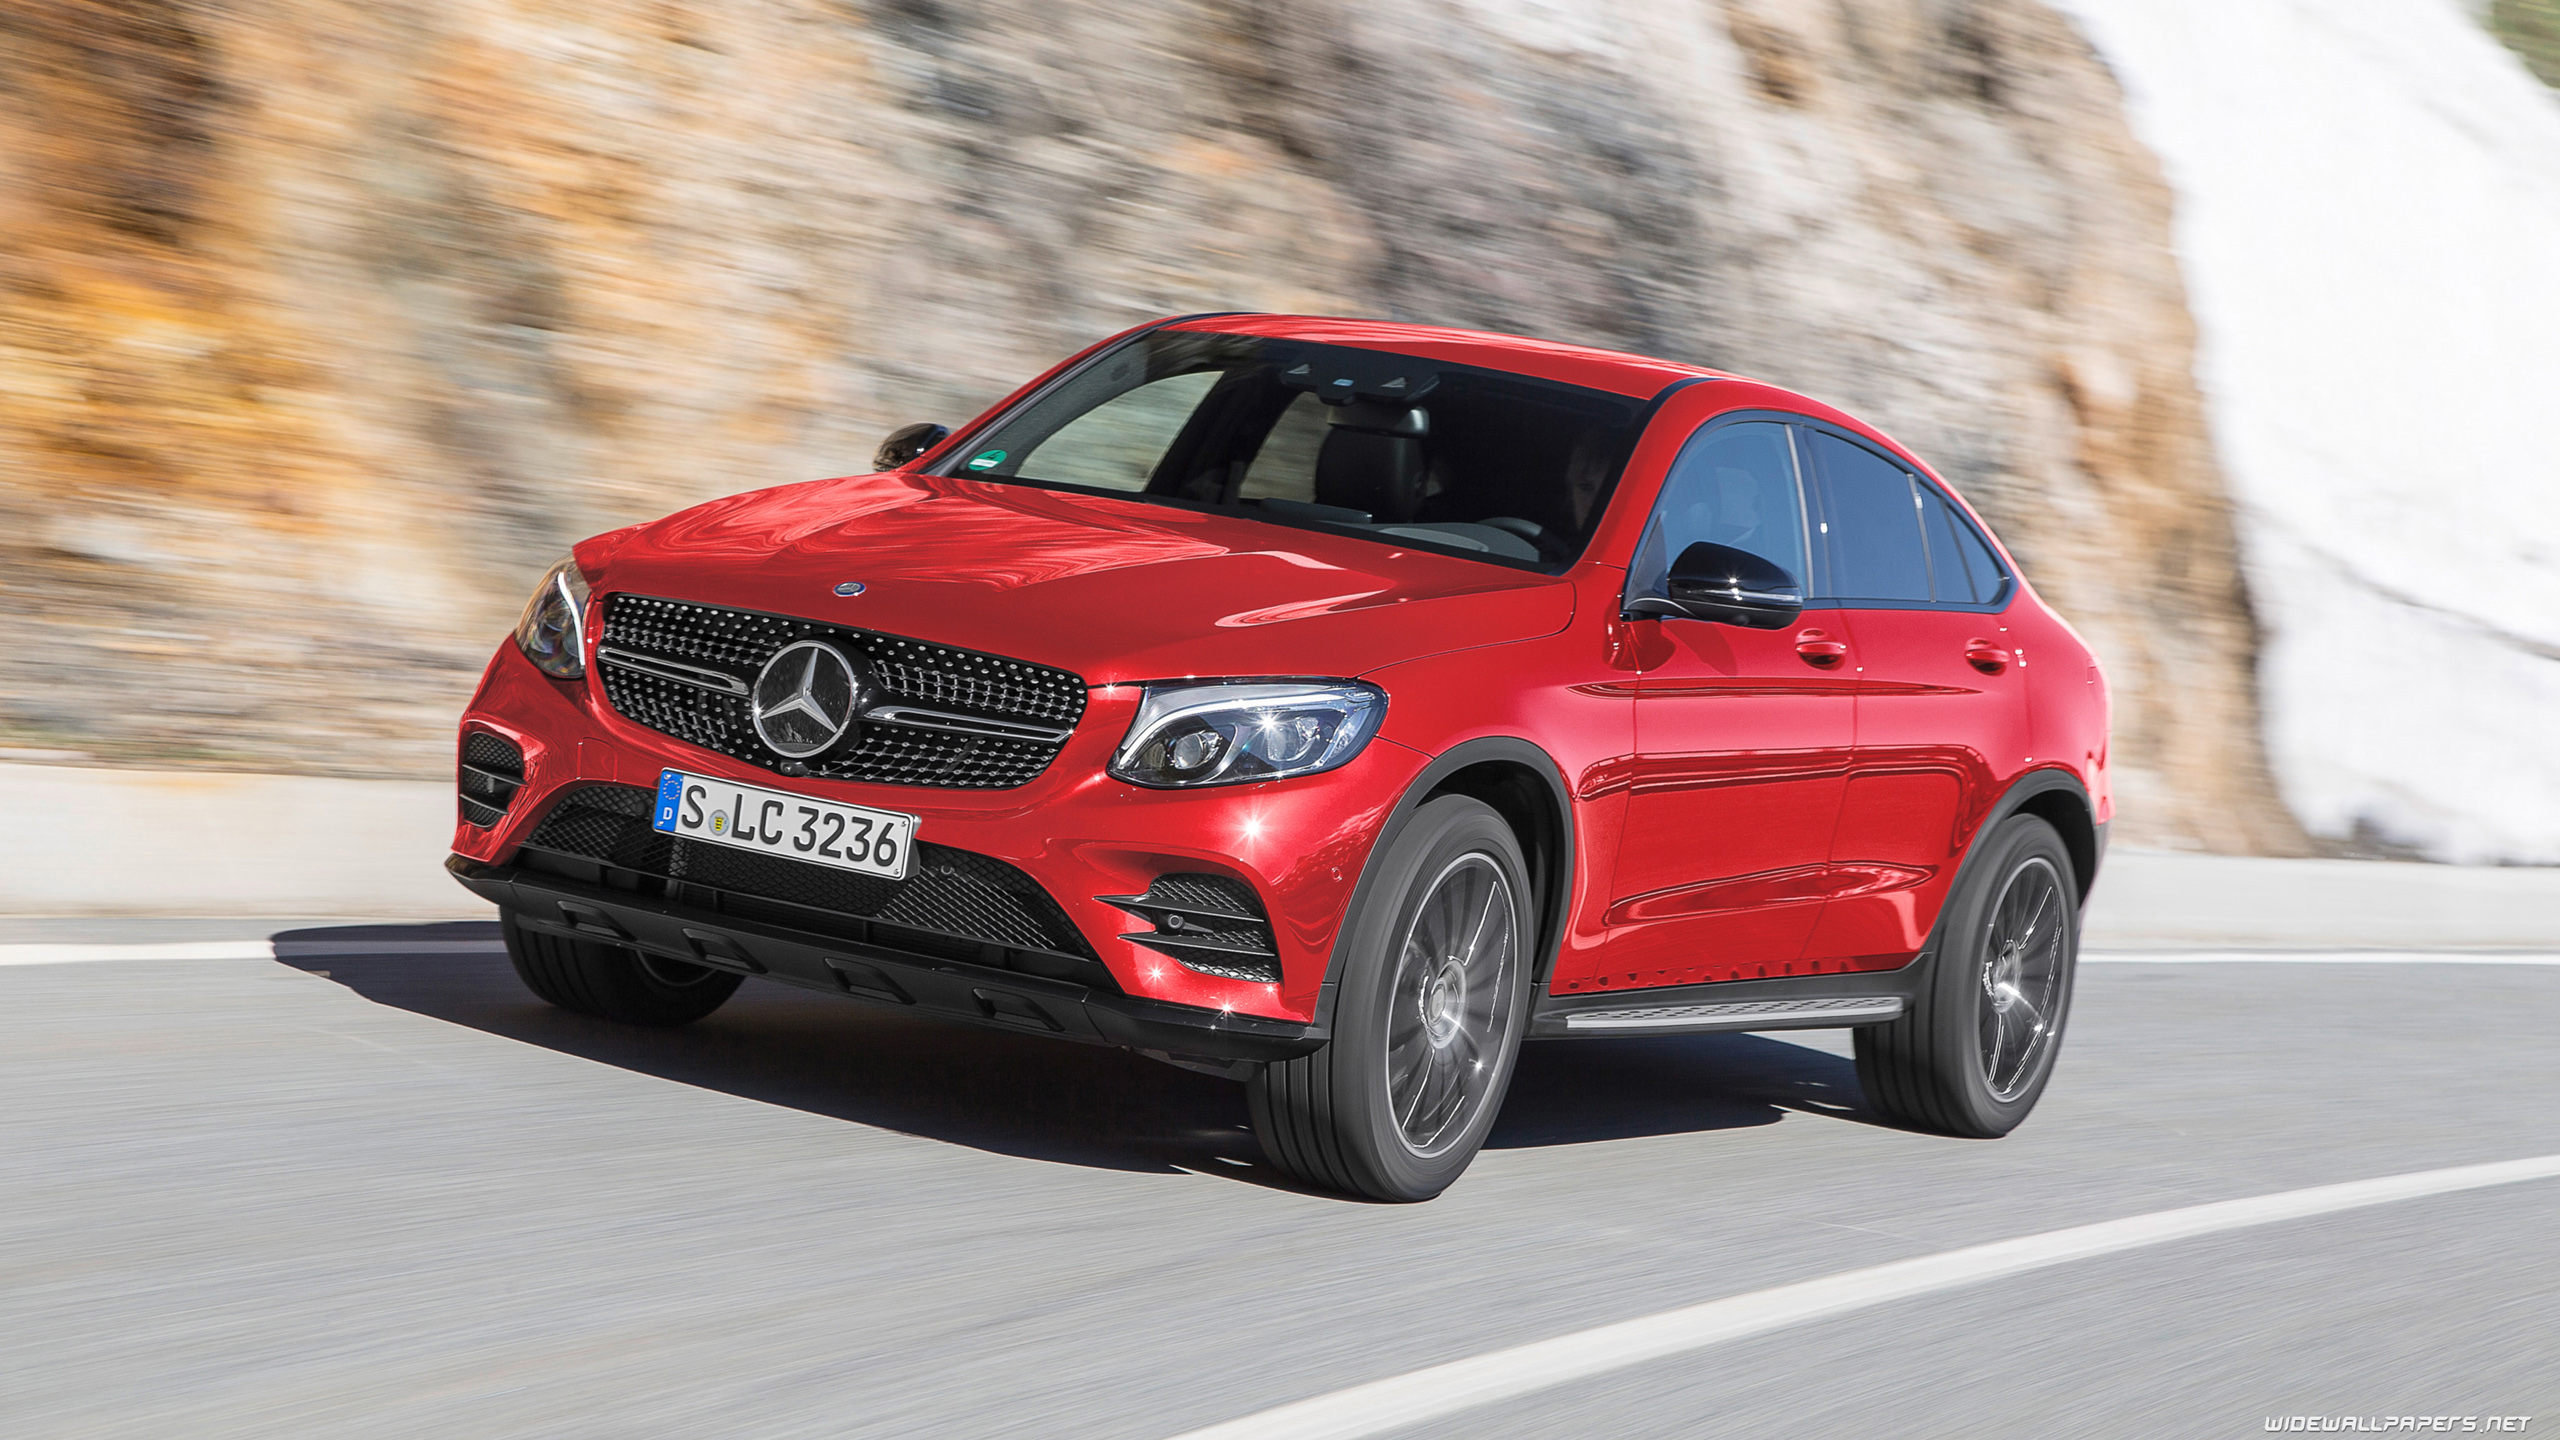 Mercedes benz glc 350 d coupe amg line 2016 wallpapers and hd images -  Wallpapers 4k Ultra Hd Mercedes Glc 350 D Coupe Amg Line 2560x1440 2560x1600 3840x2160